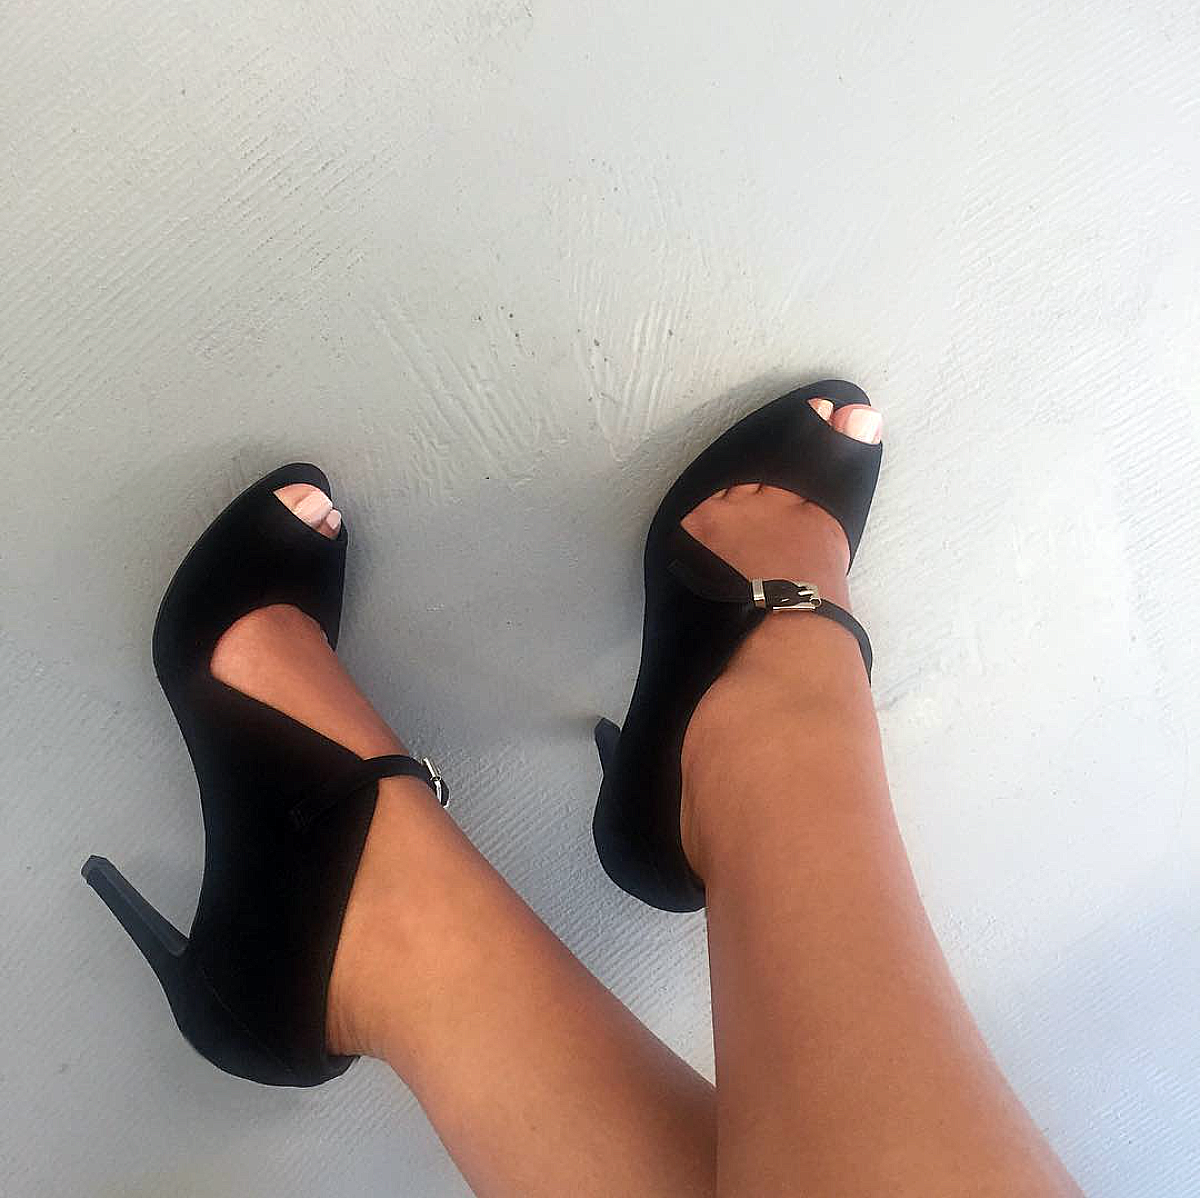 L'enfant Terrible - Add a slick edge to your everyday style with this classic silhouette.. 👀💕📽#lenfantterrible #terriblesworld #sandals #instaheels #shoeoftheday #pumps